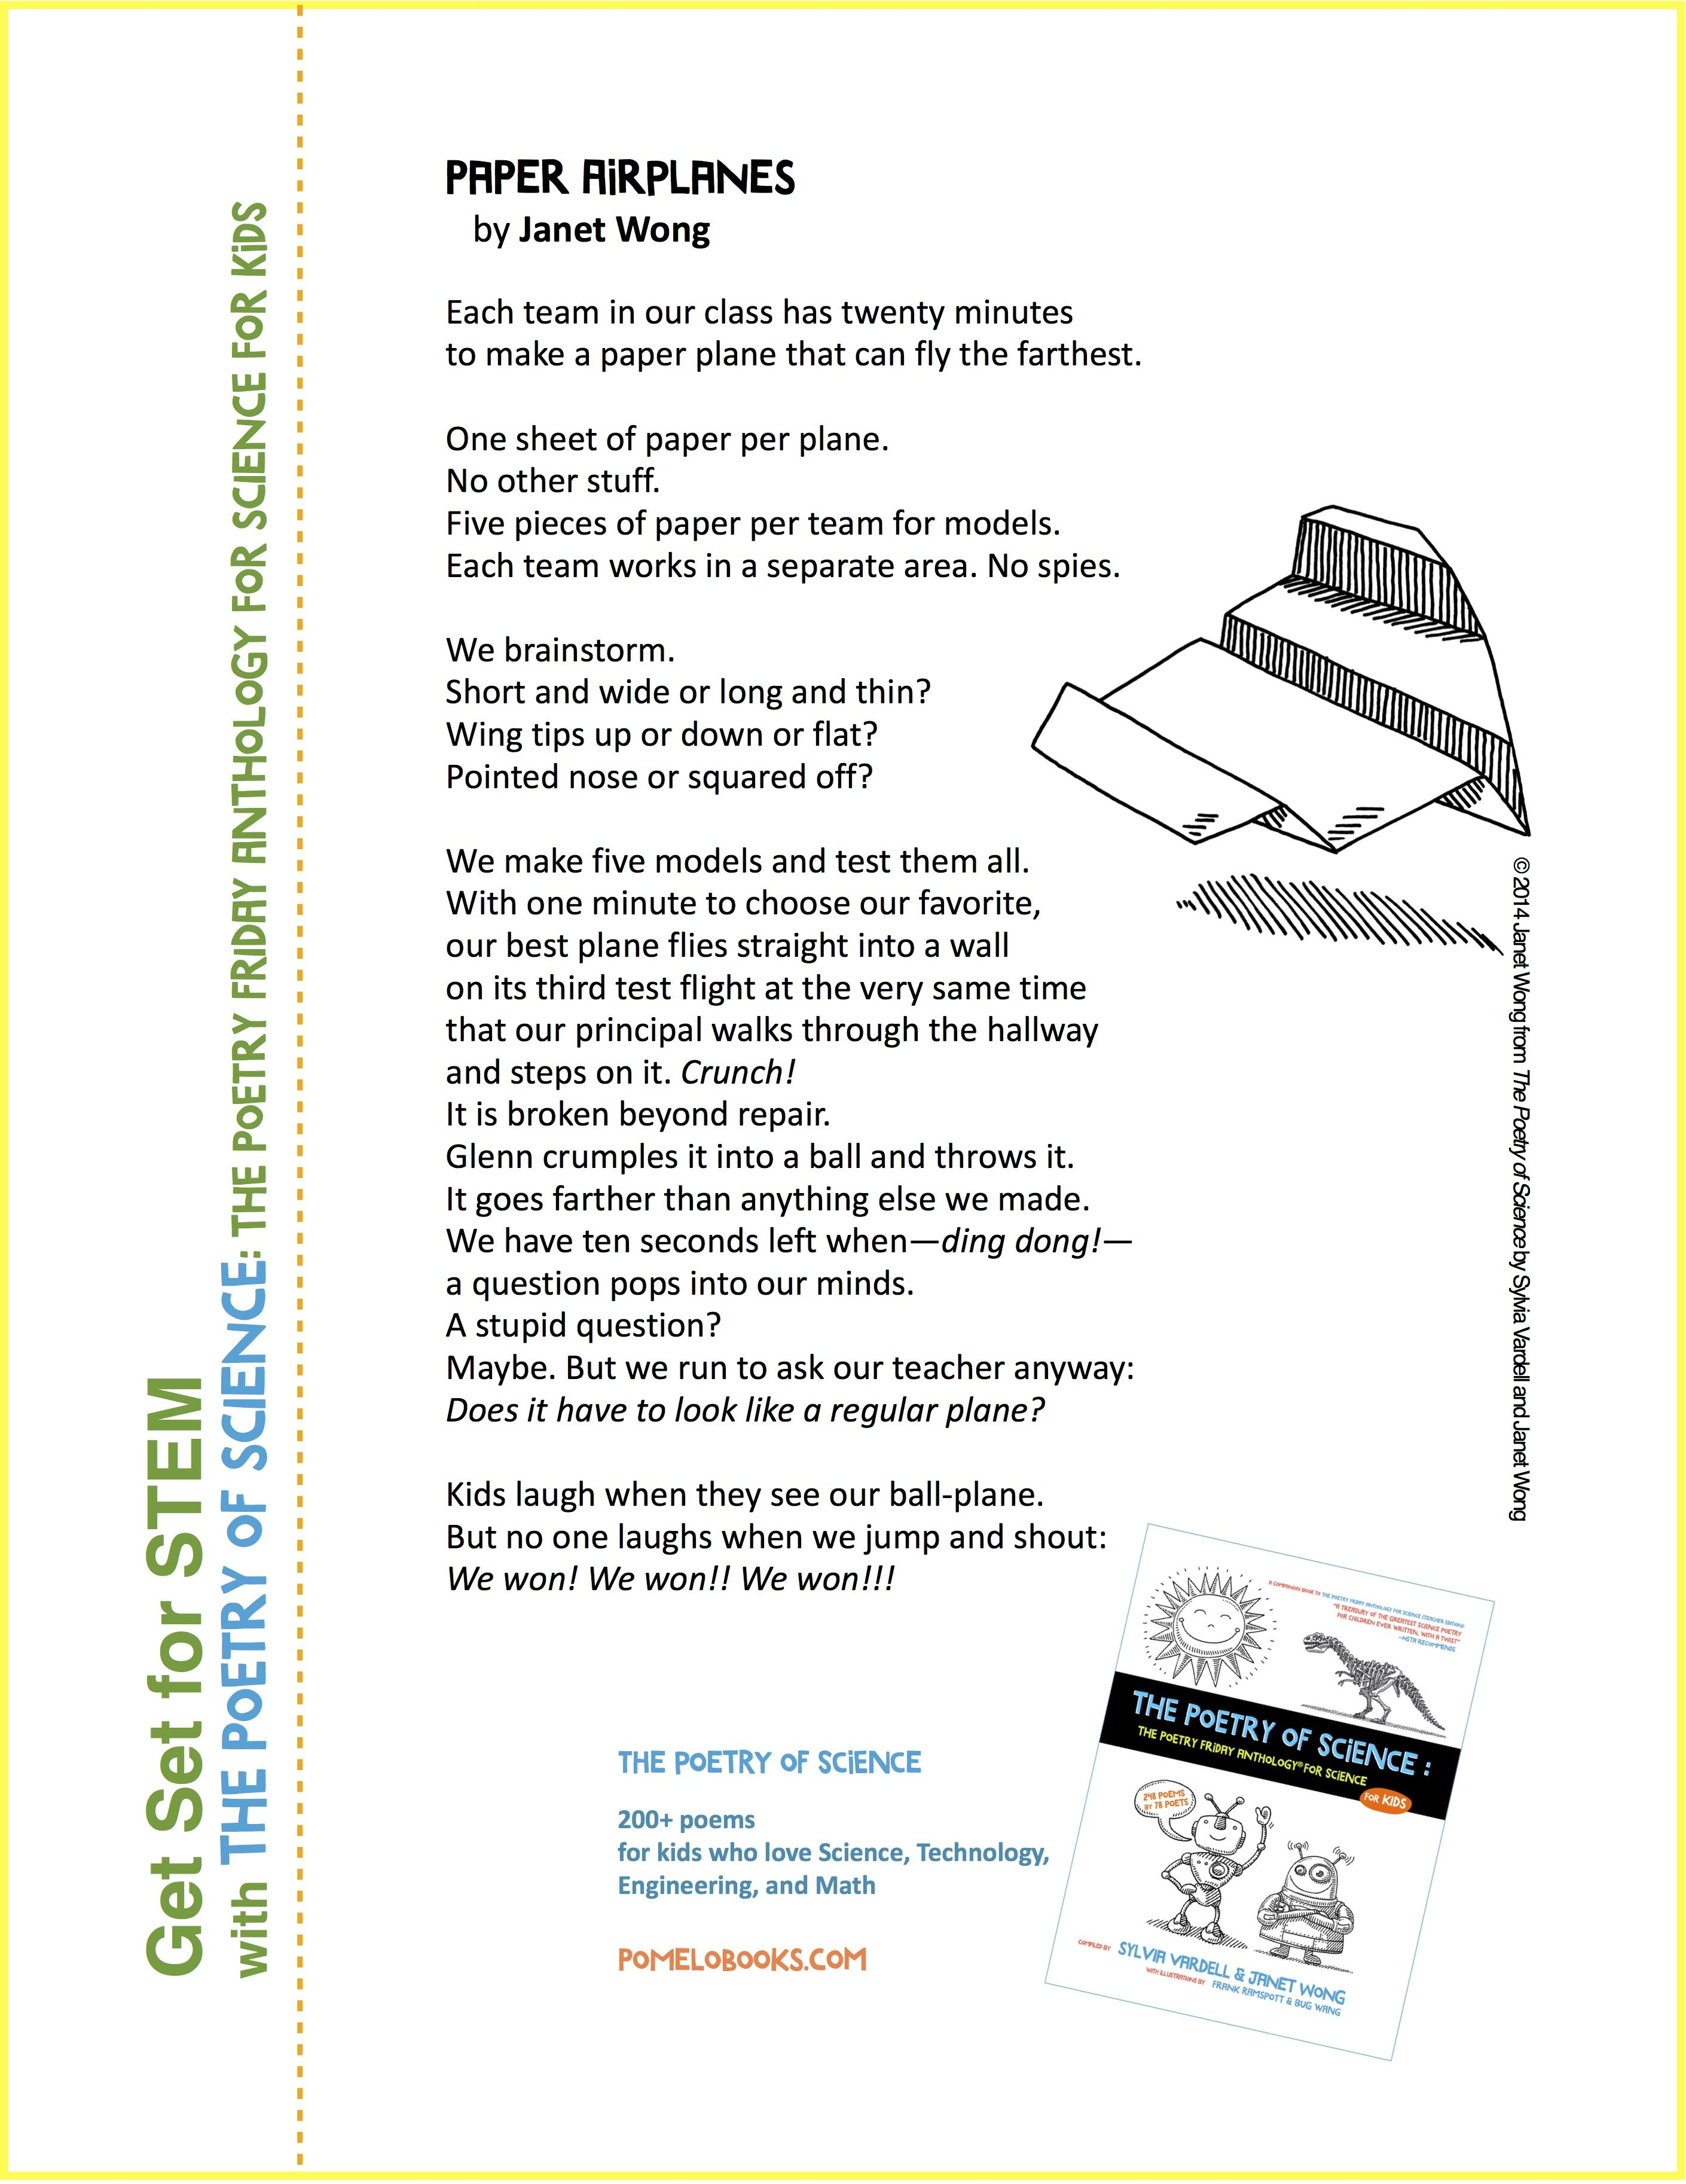 Share Paper Airplanes By Janet Wong From The Poetry Of